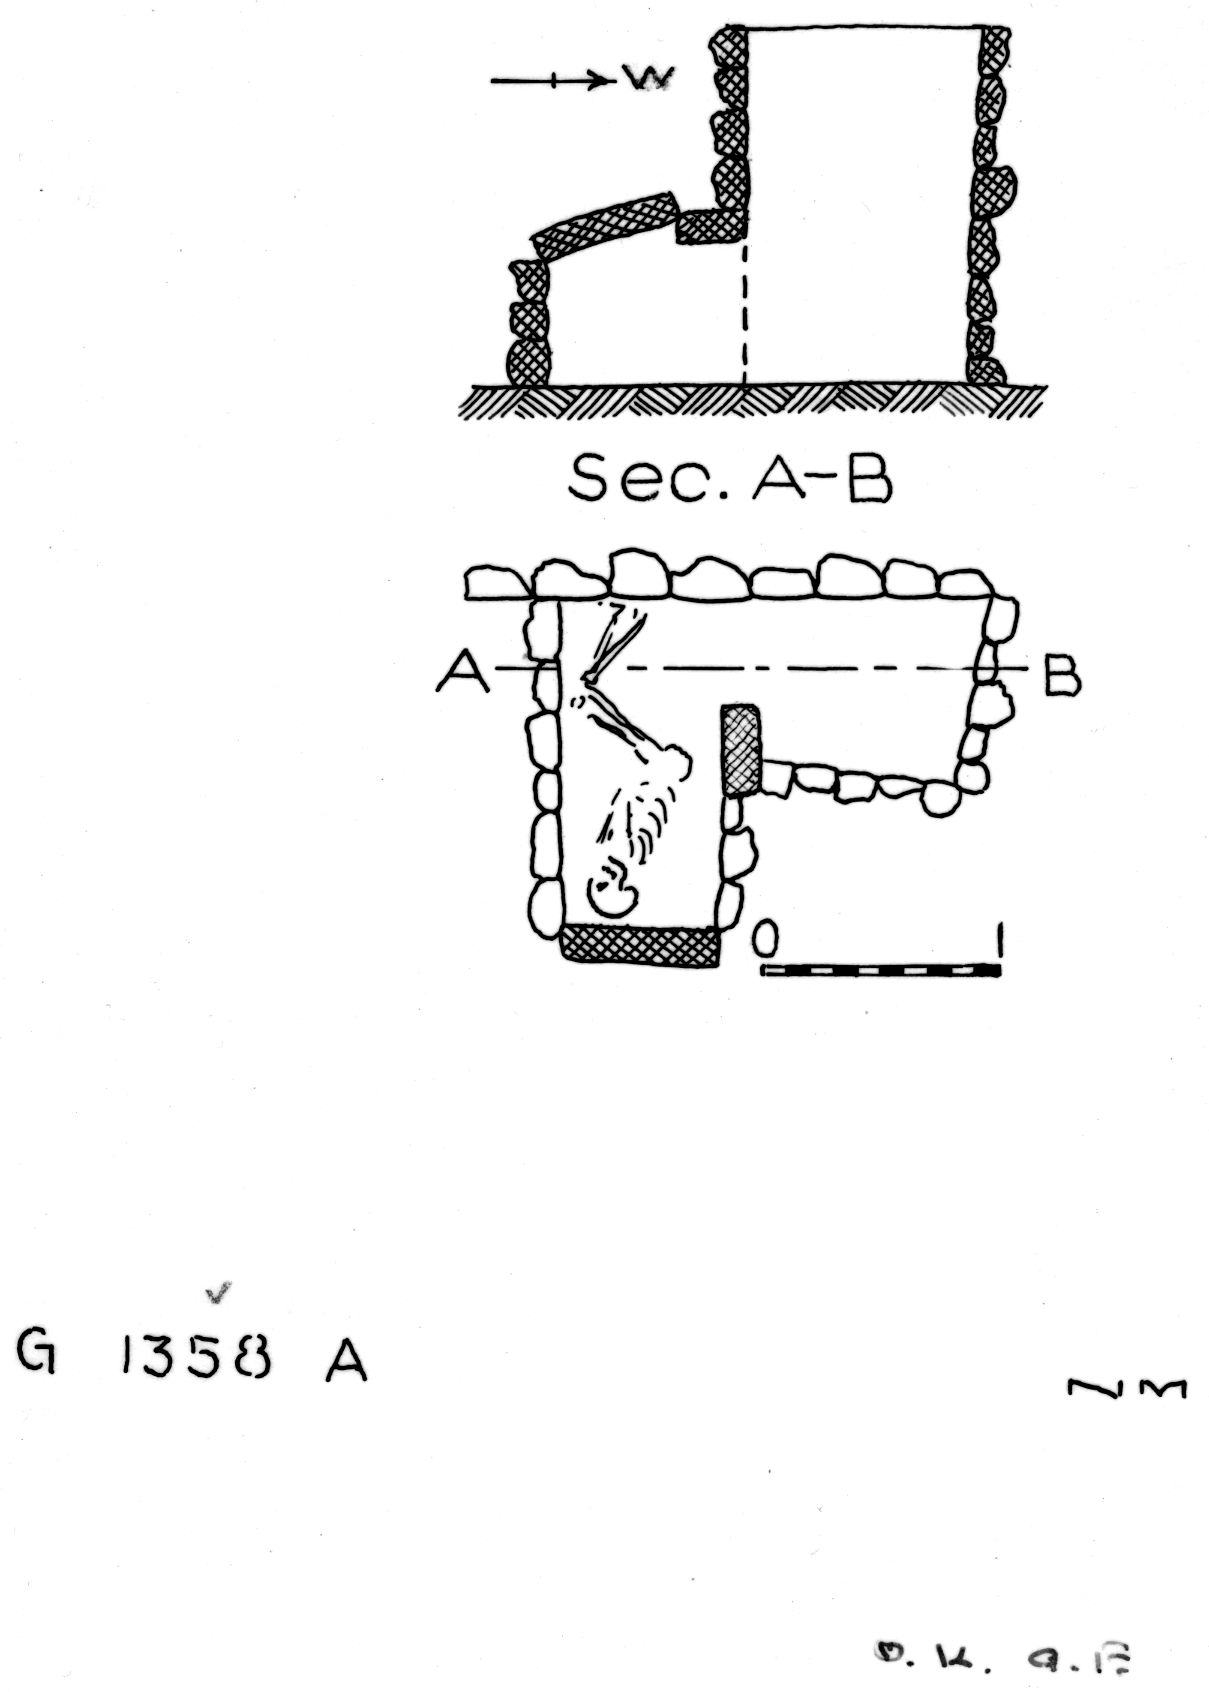 Maps and plans: G 1358, Shaft A